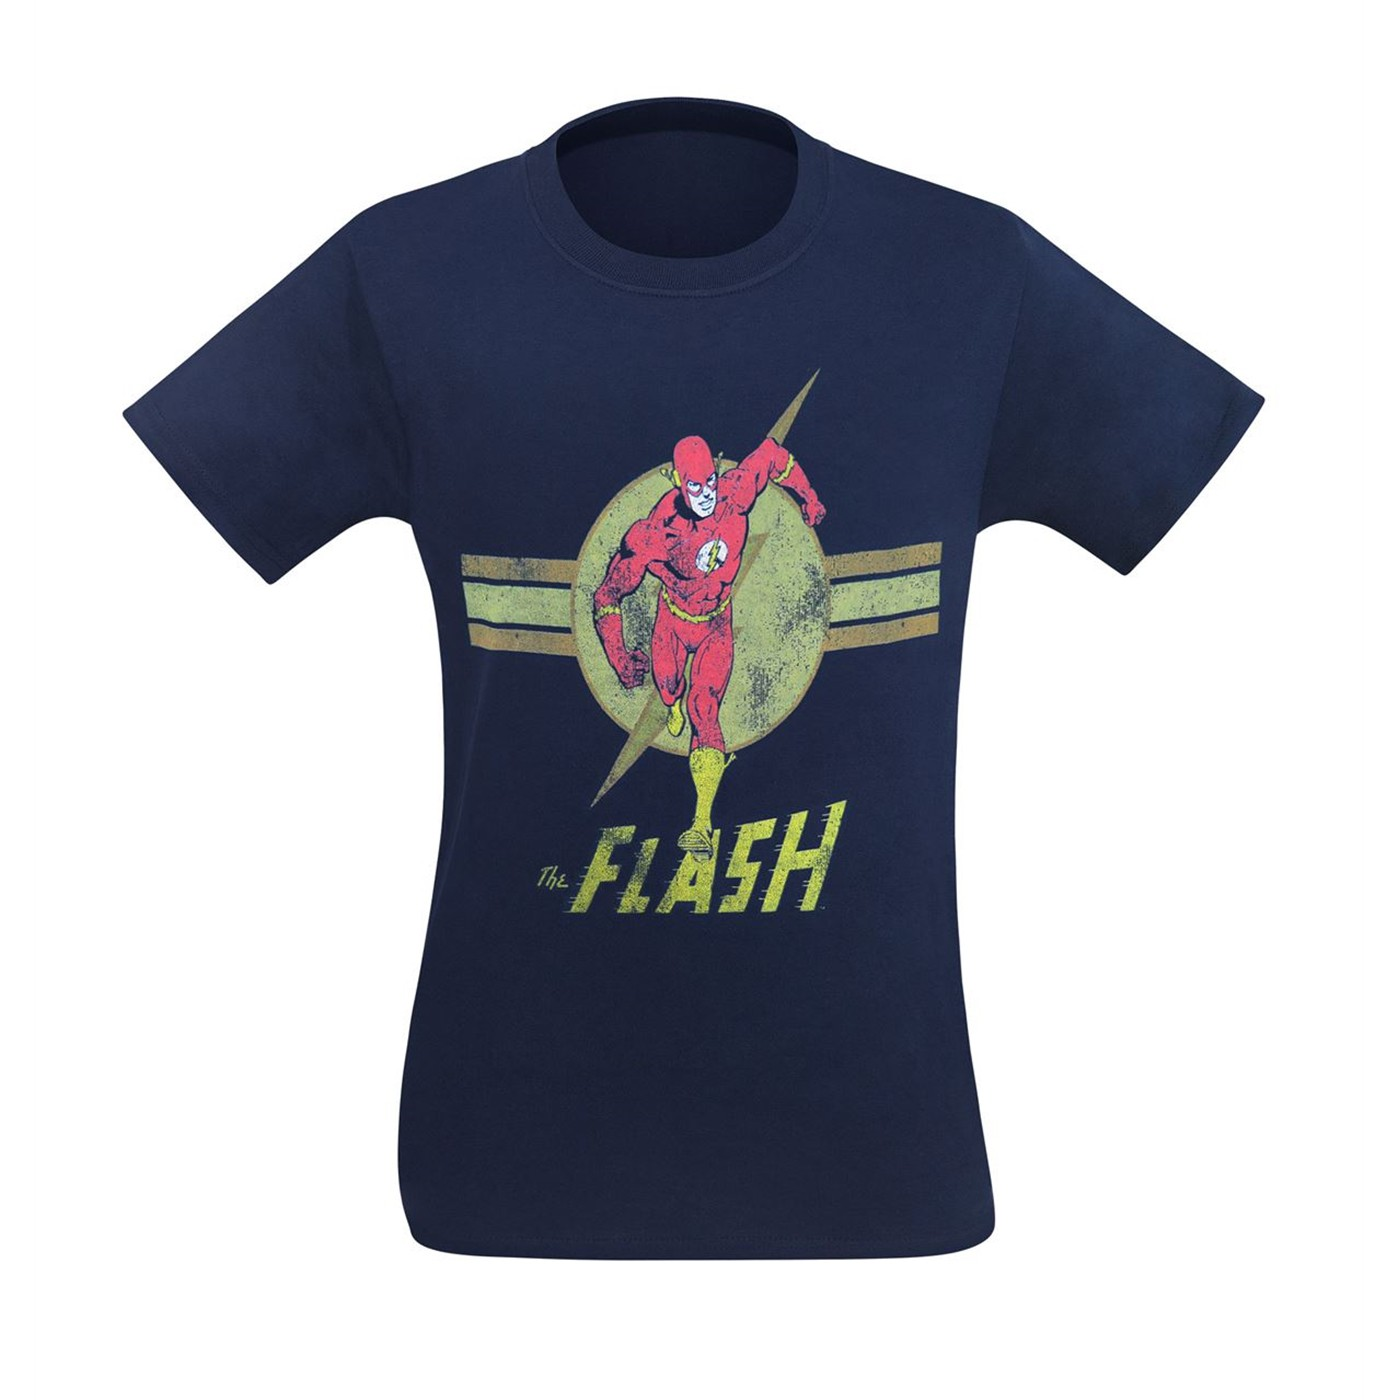 Flash Navy Blue Streaker 30 Single T-Shirt